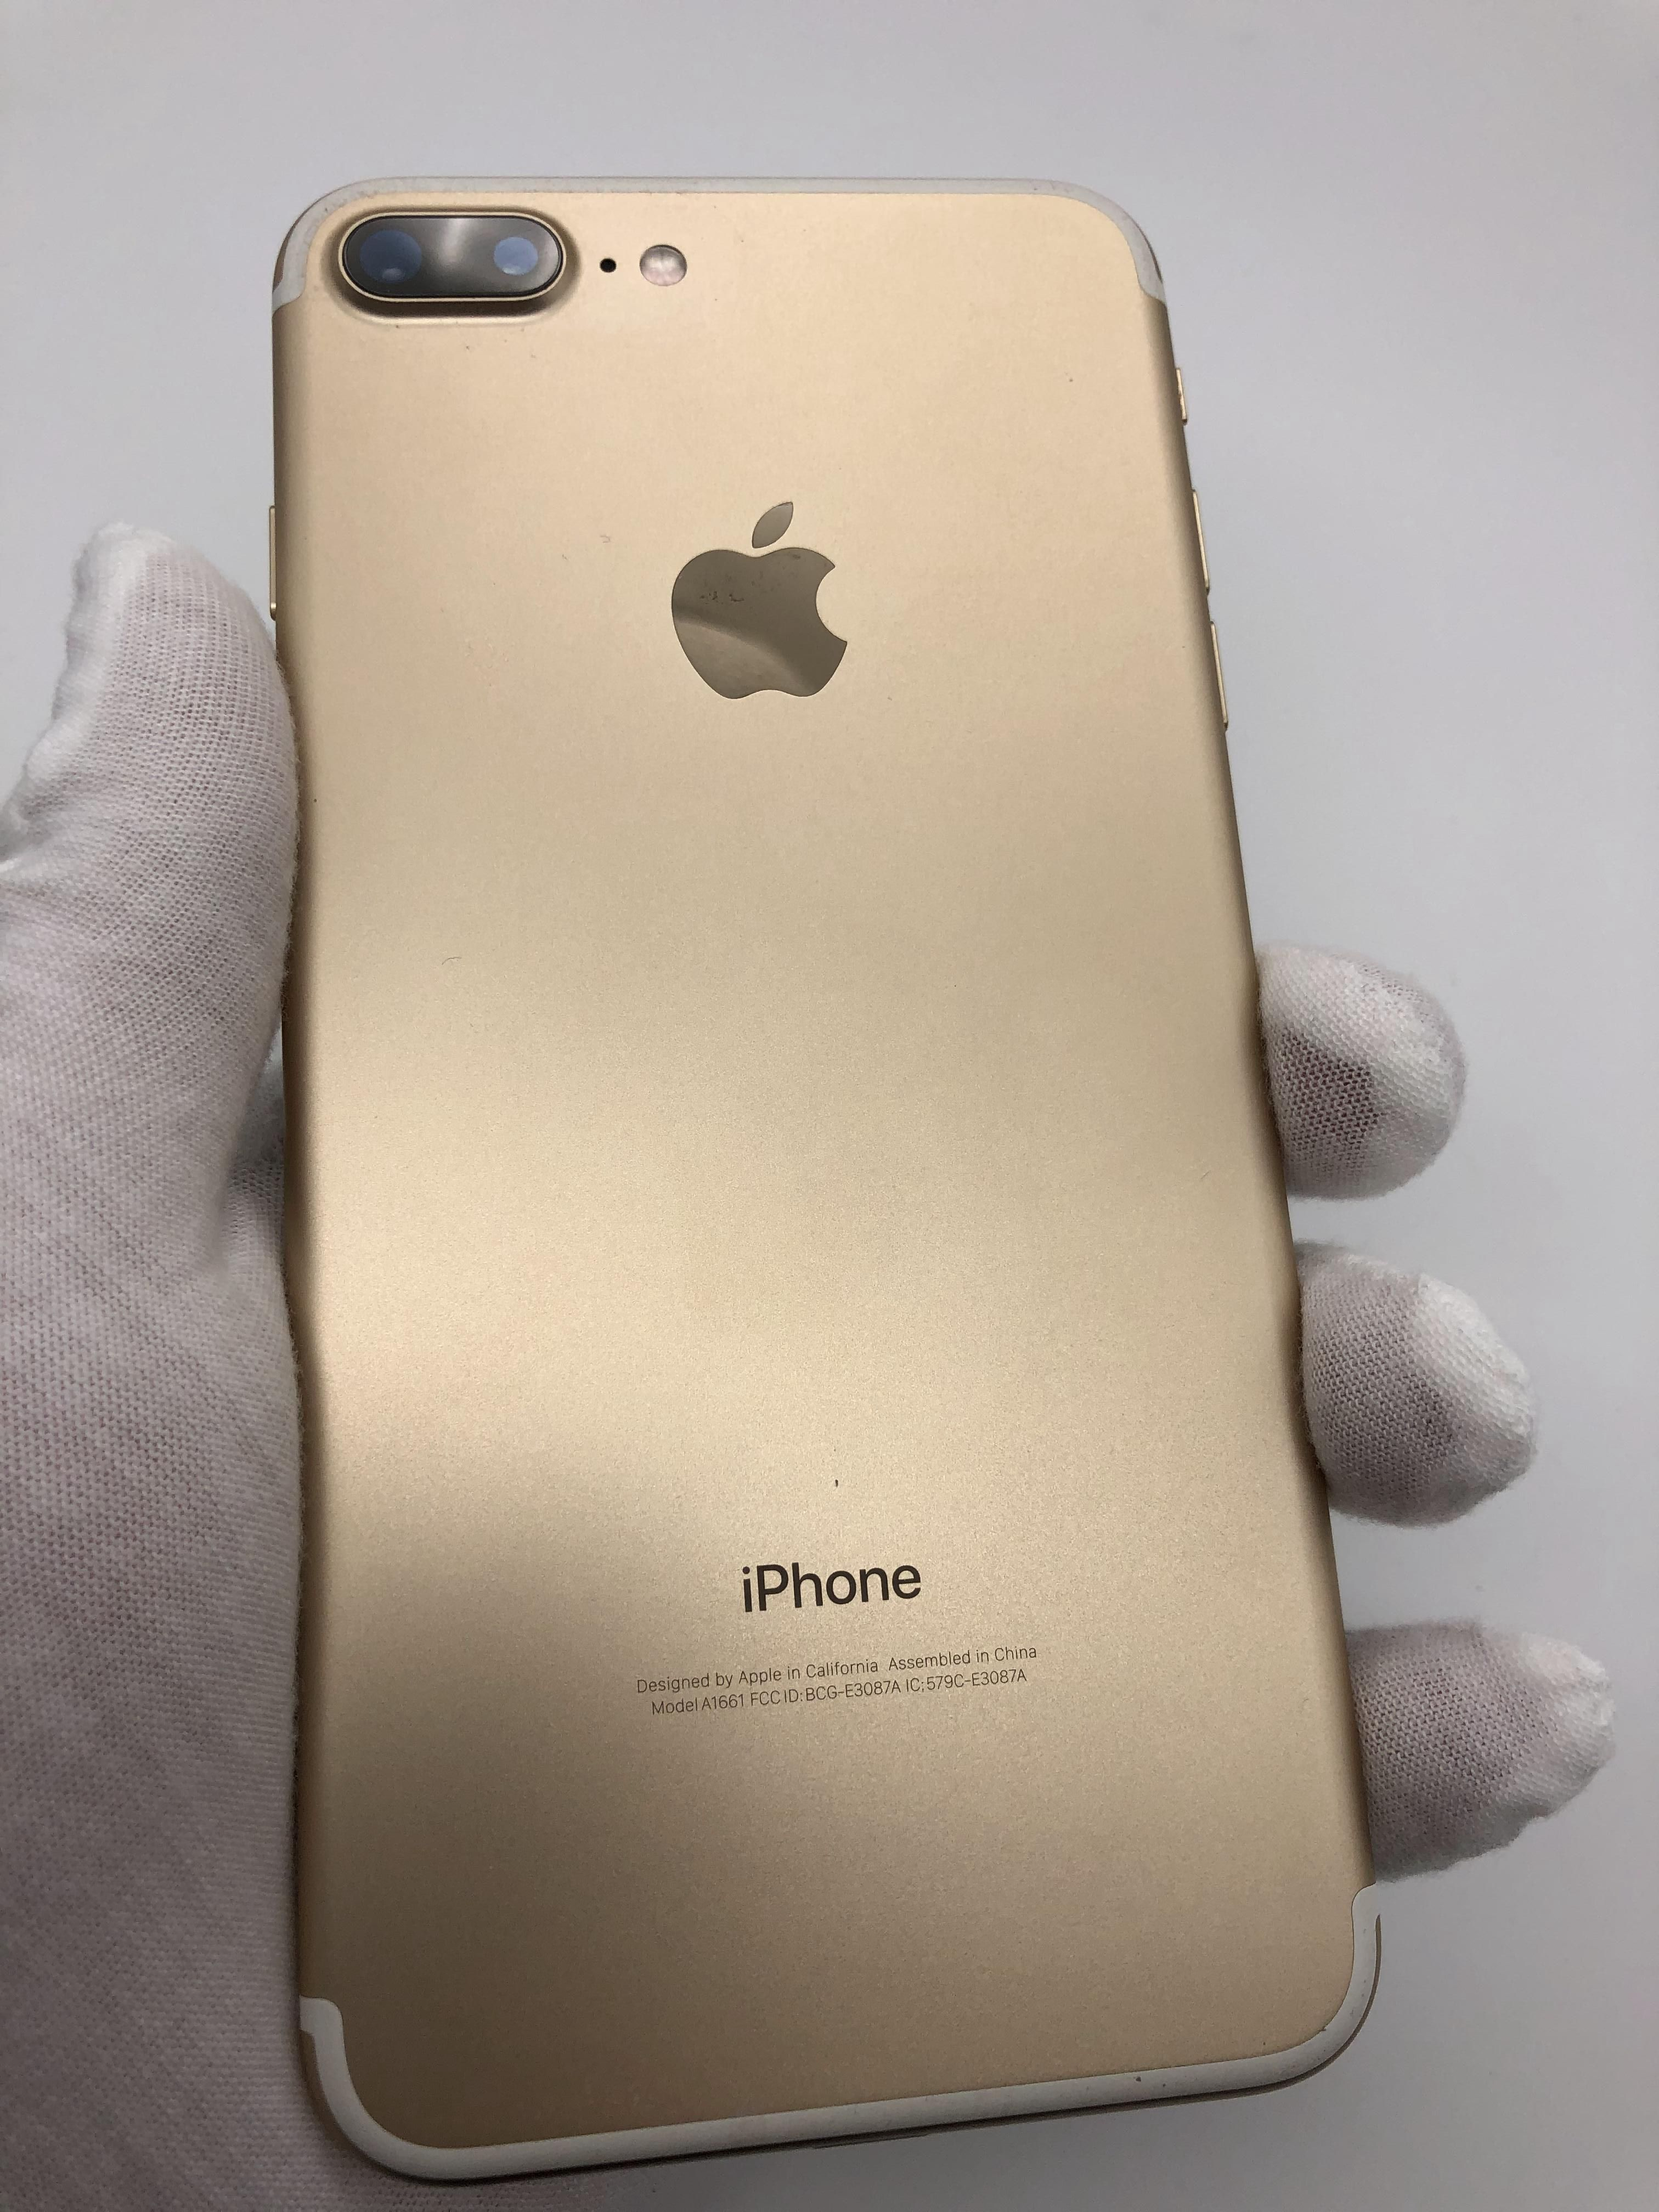 Used Iphone 7 128gb Unlocked Used Iphones For Sale Iphones For Sale Refurbished Iphones